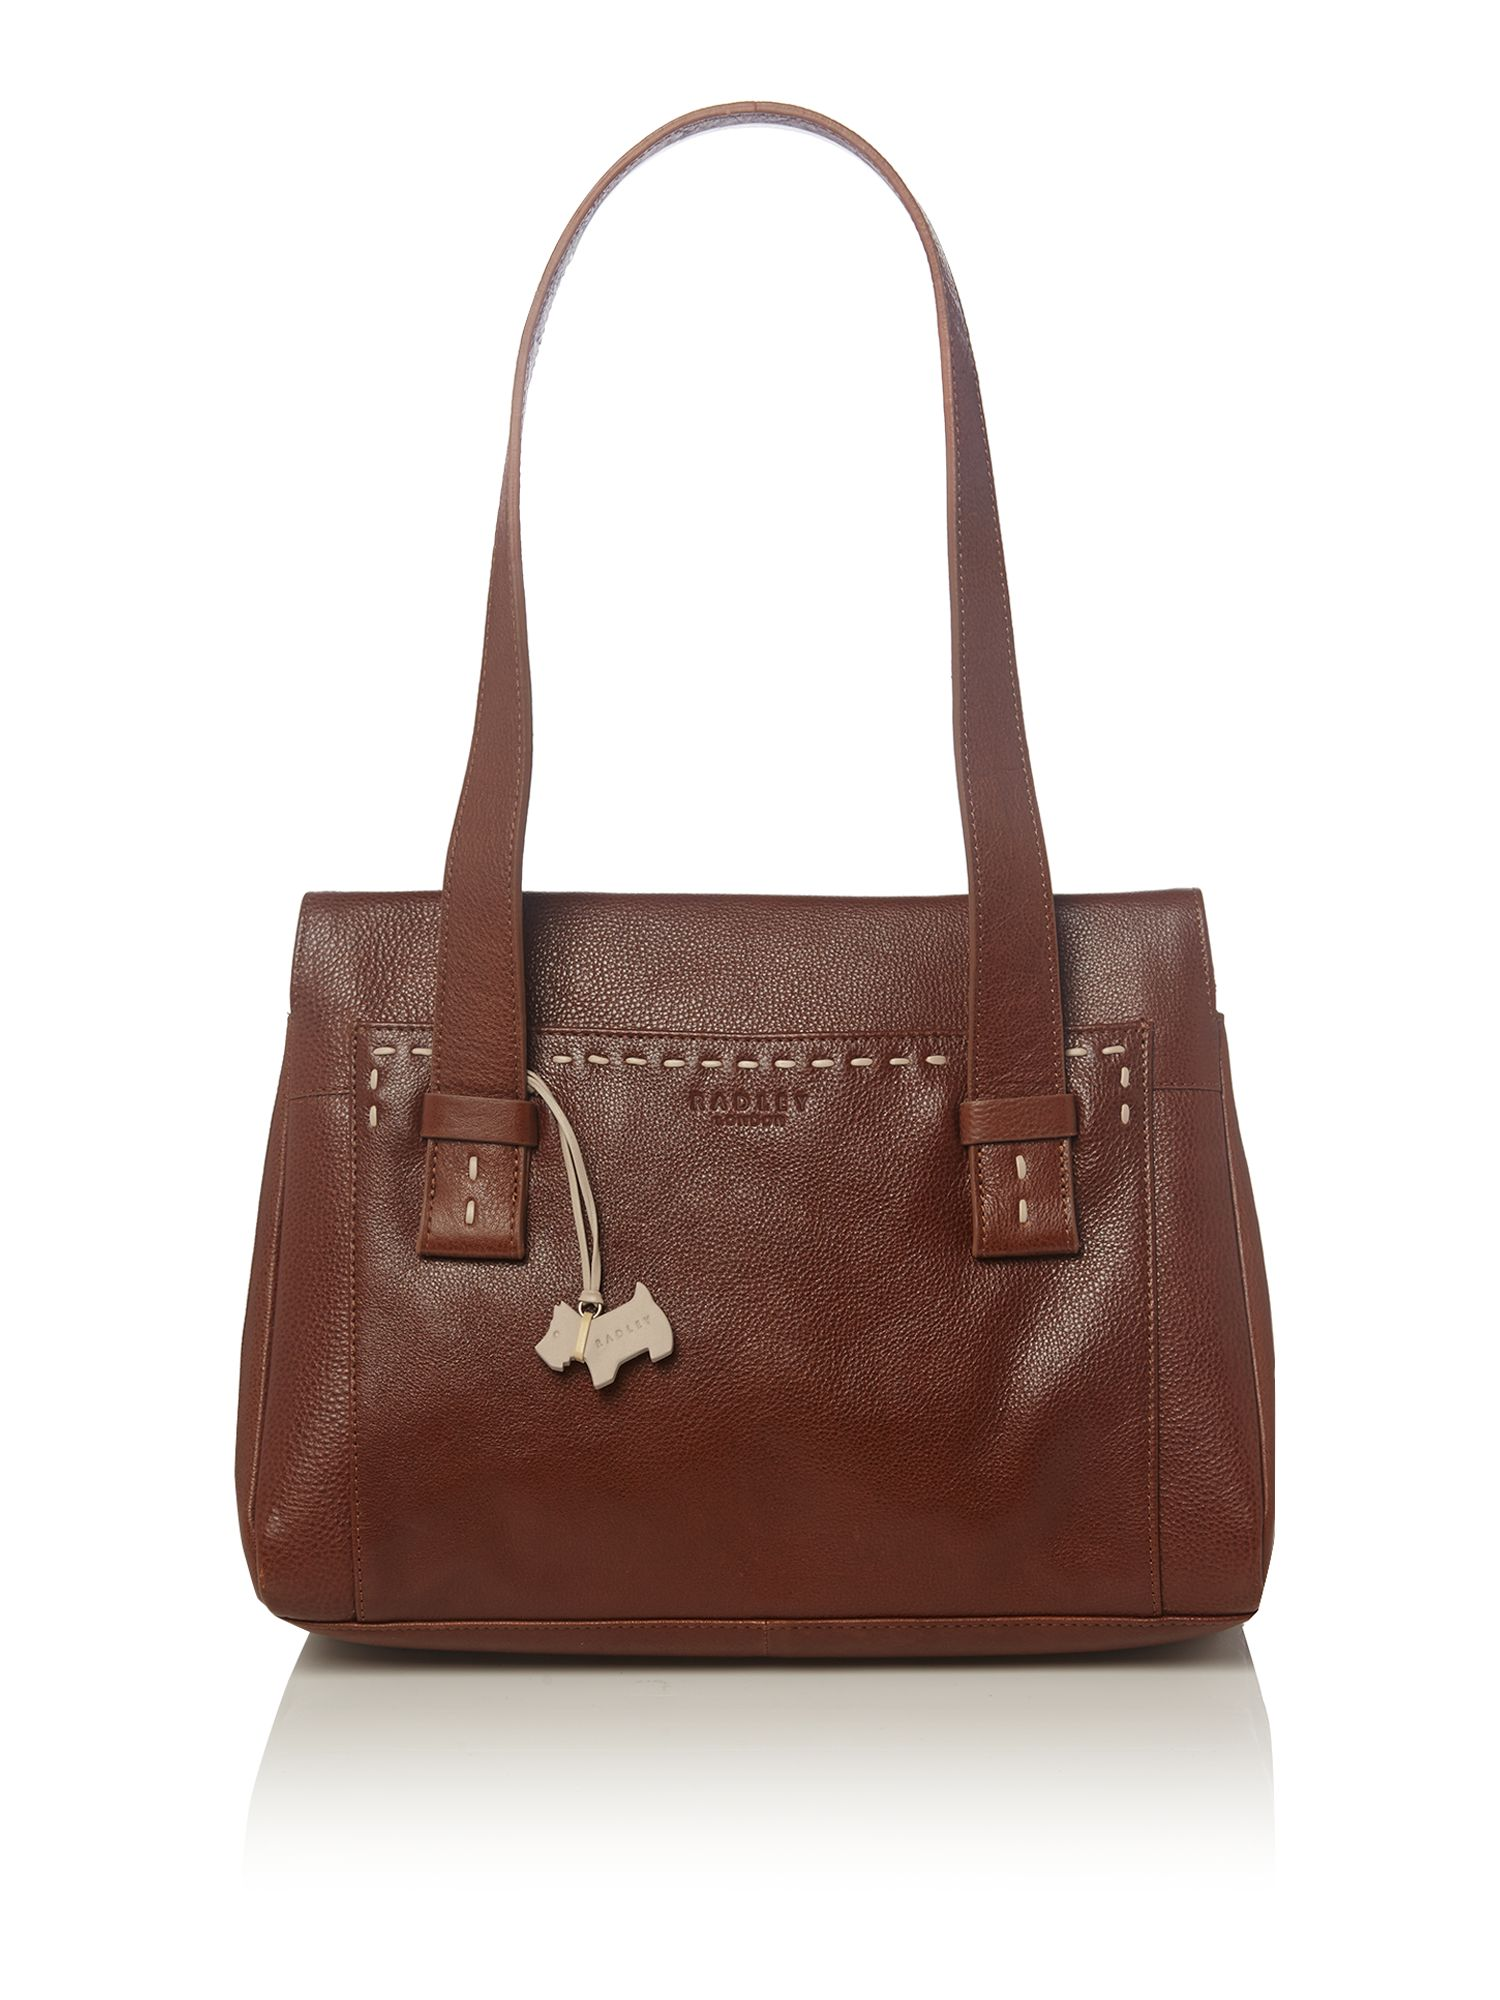 Villiers med tan leather ztop tote handbag